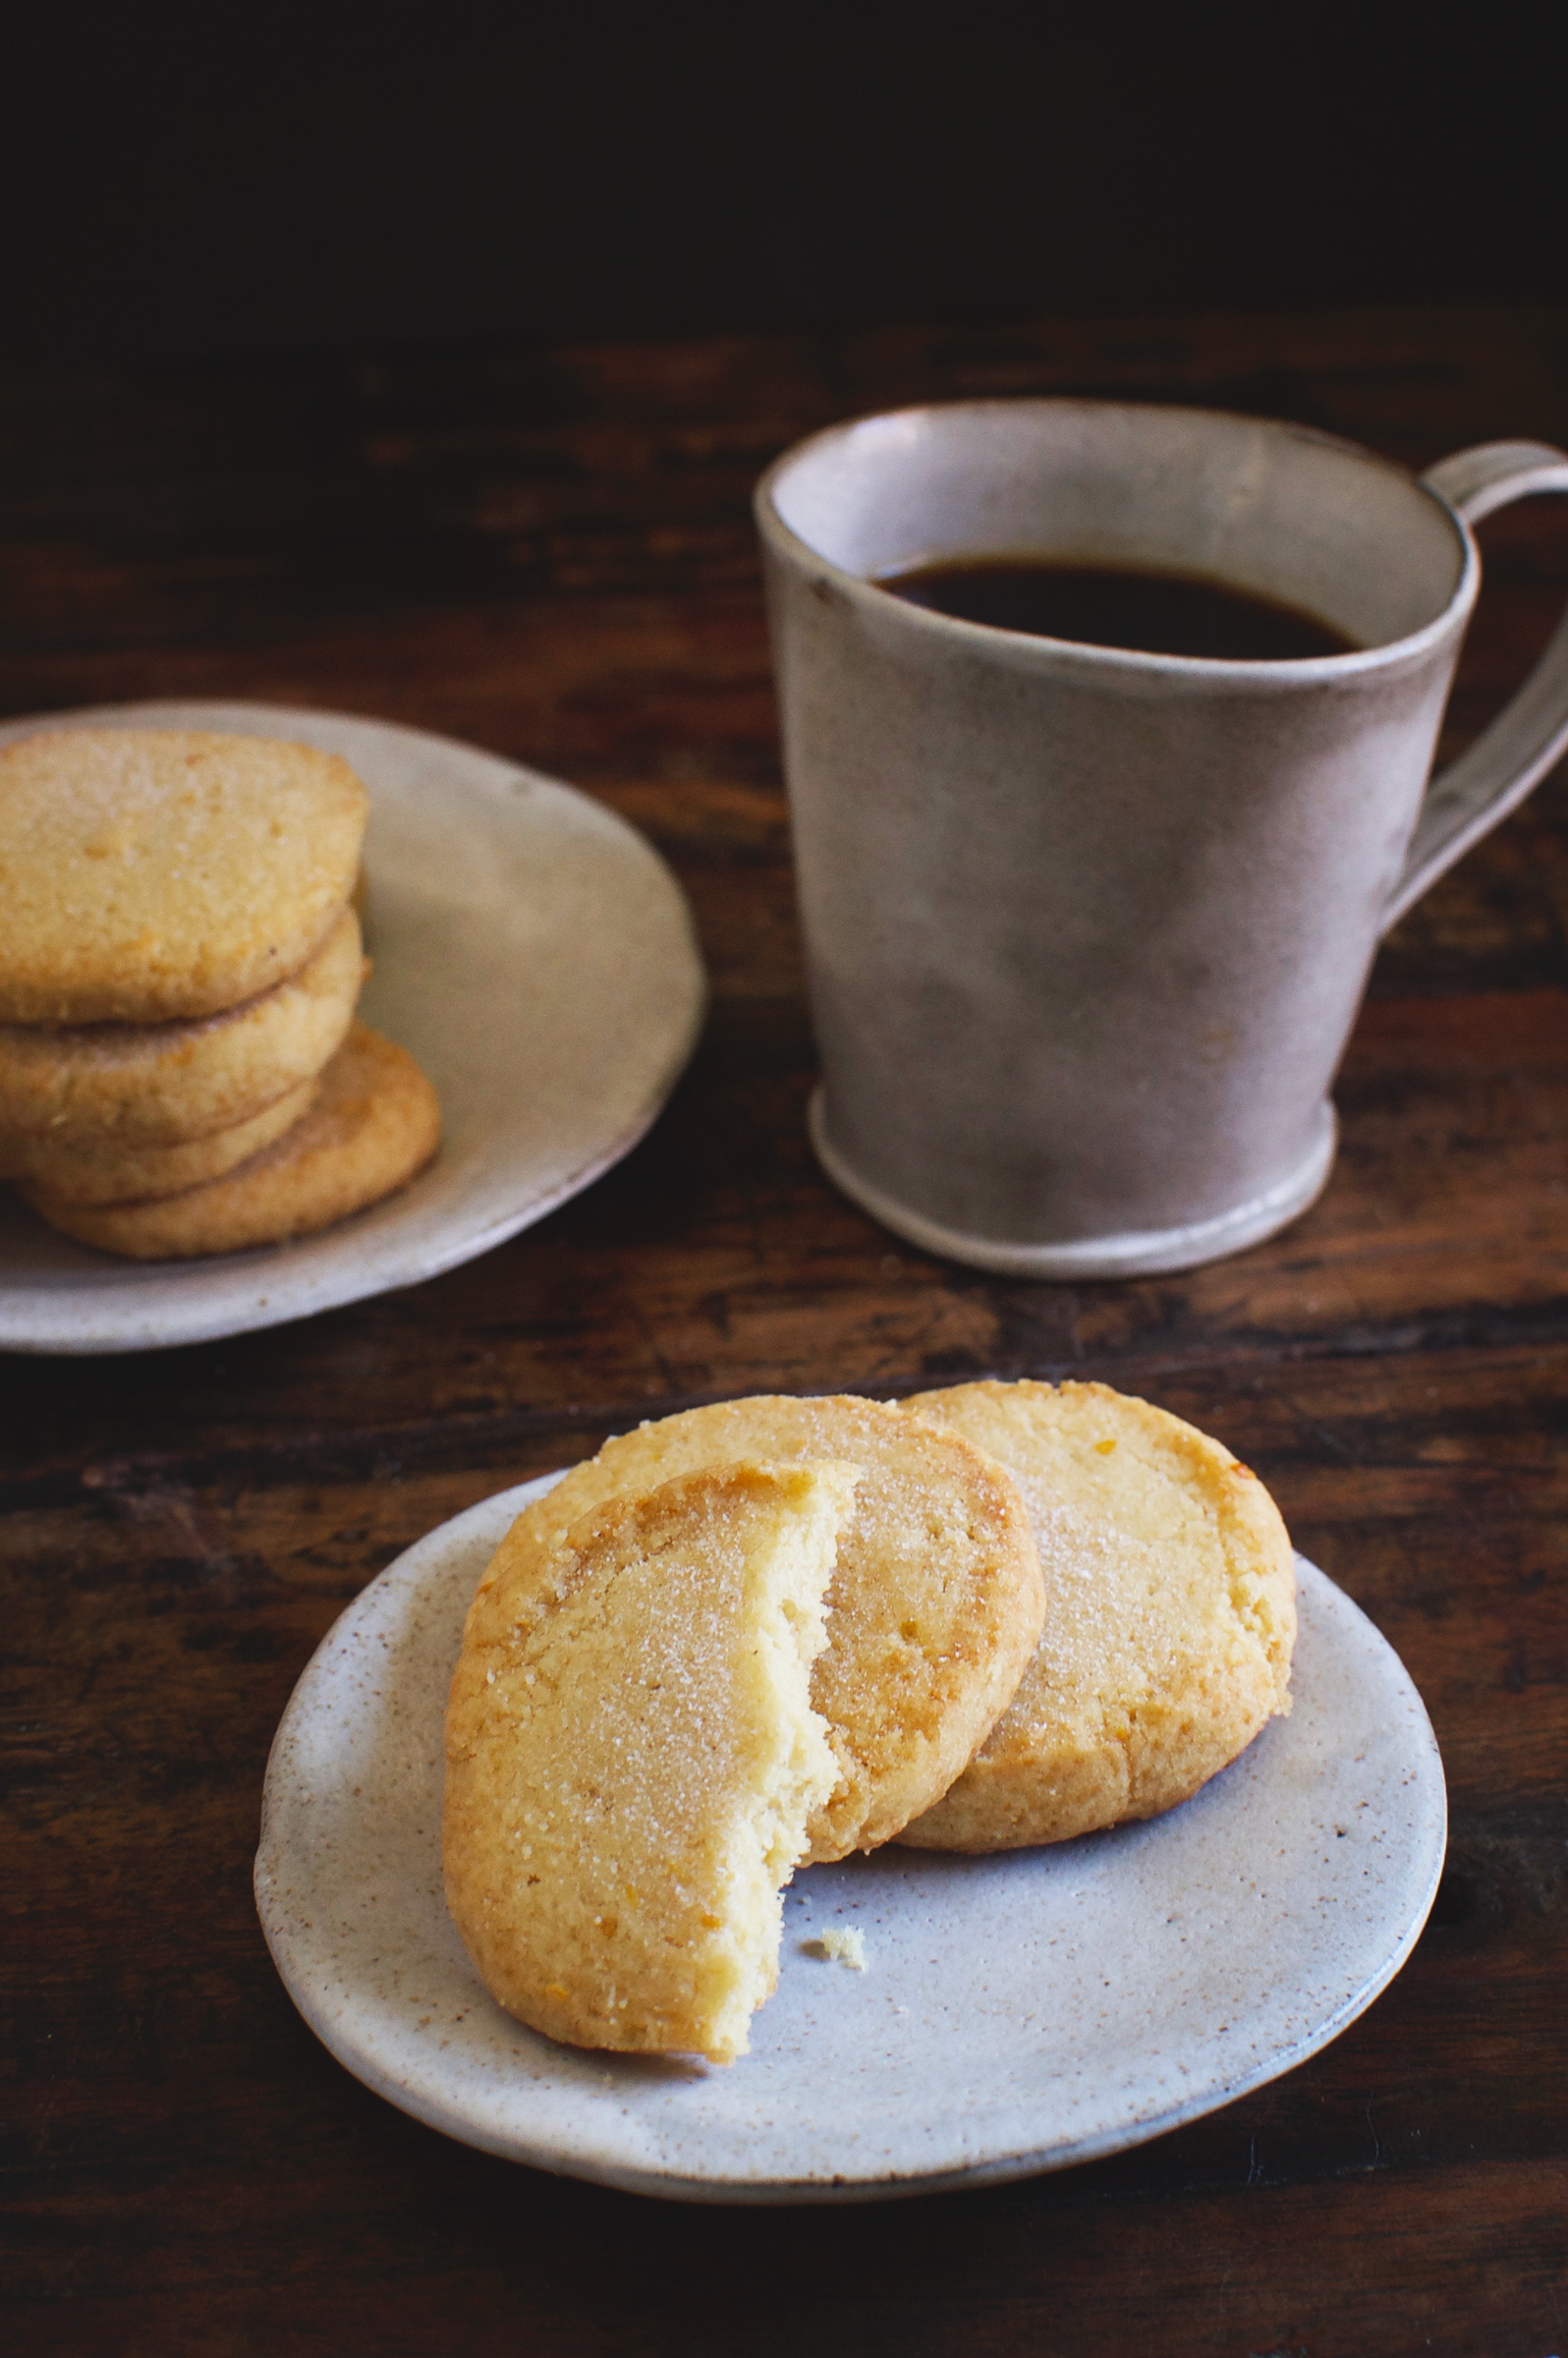 Low-Carb Sugar Cookies-Cookie on plate with bite taken out.